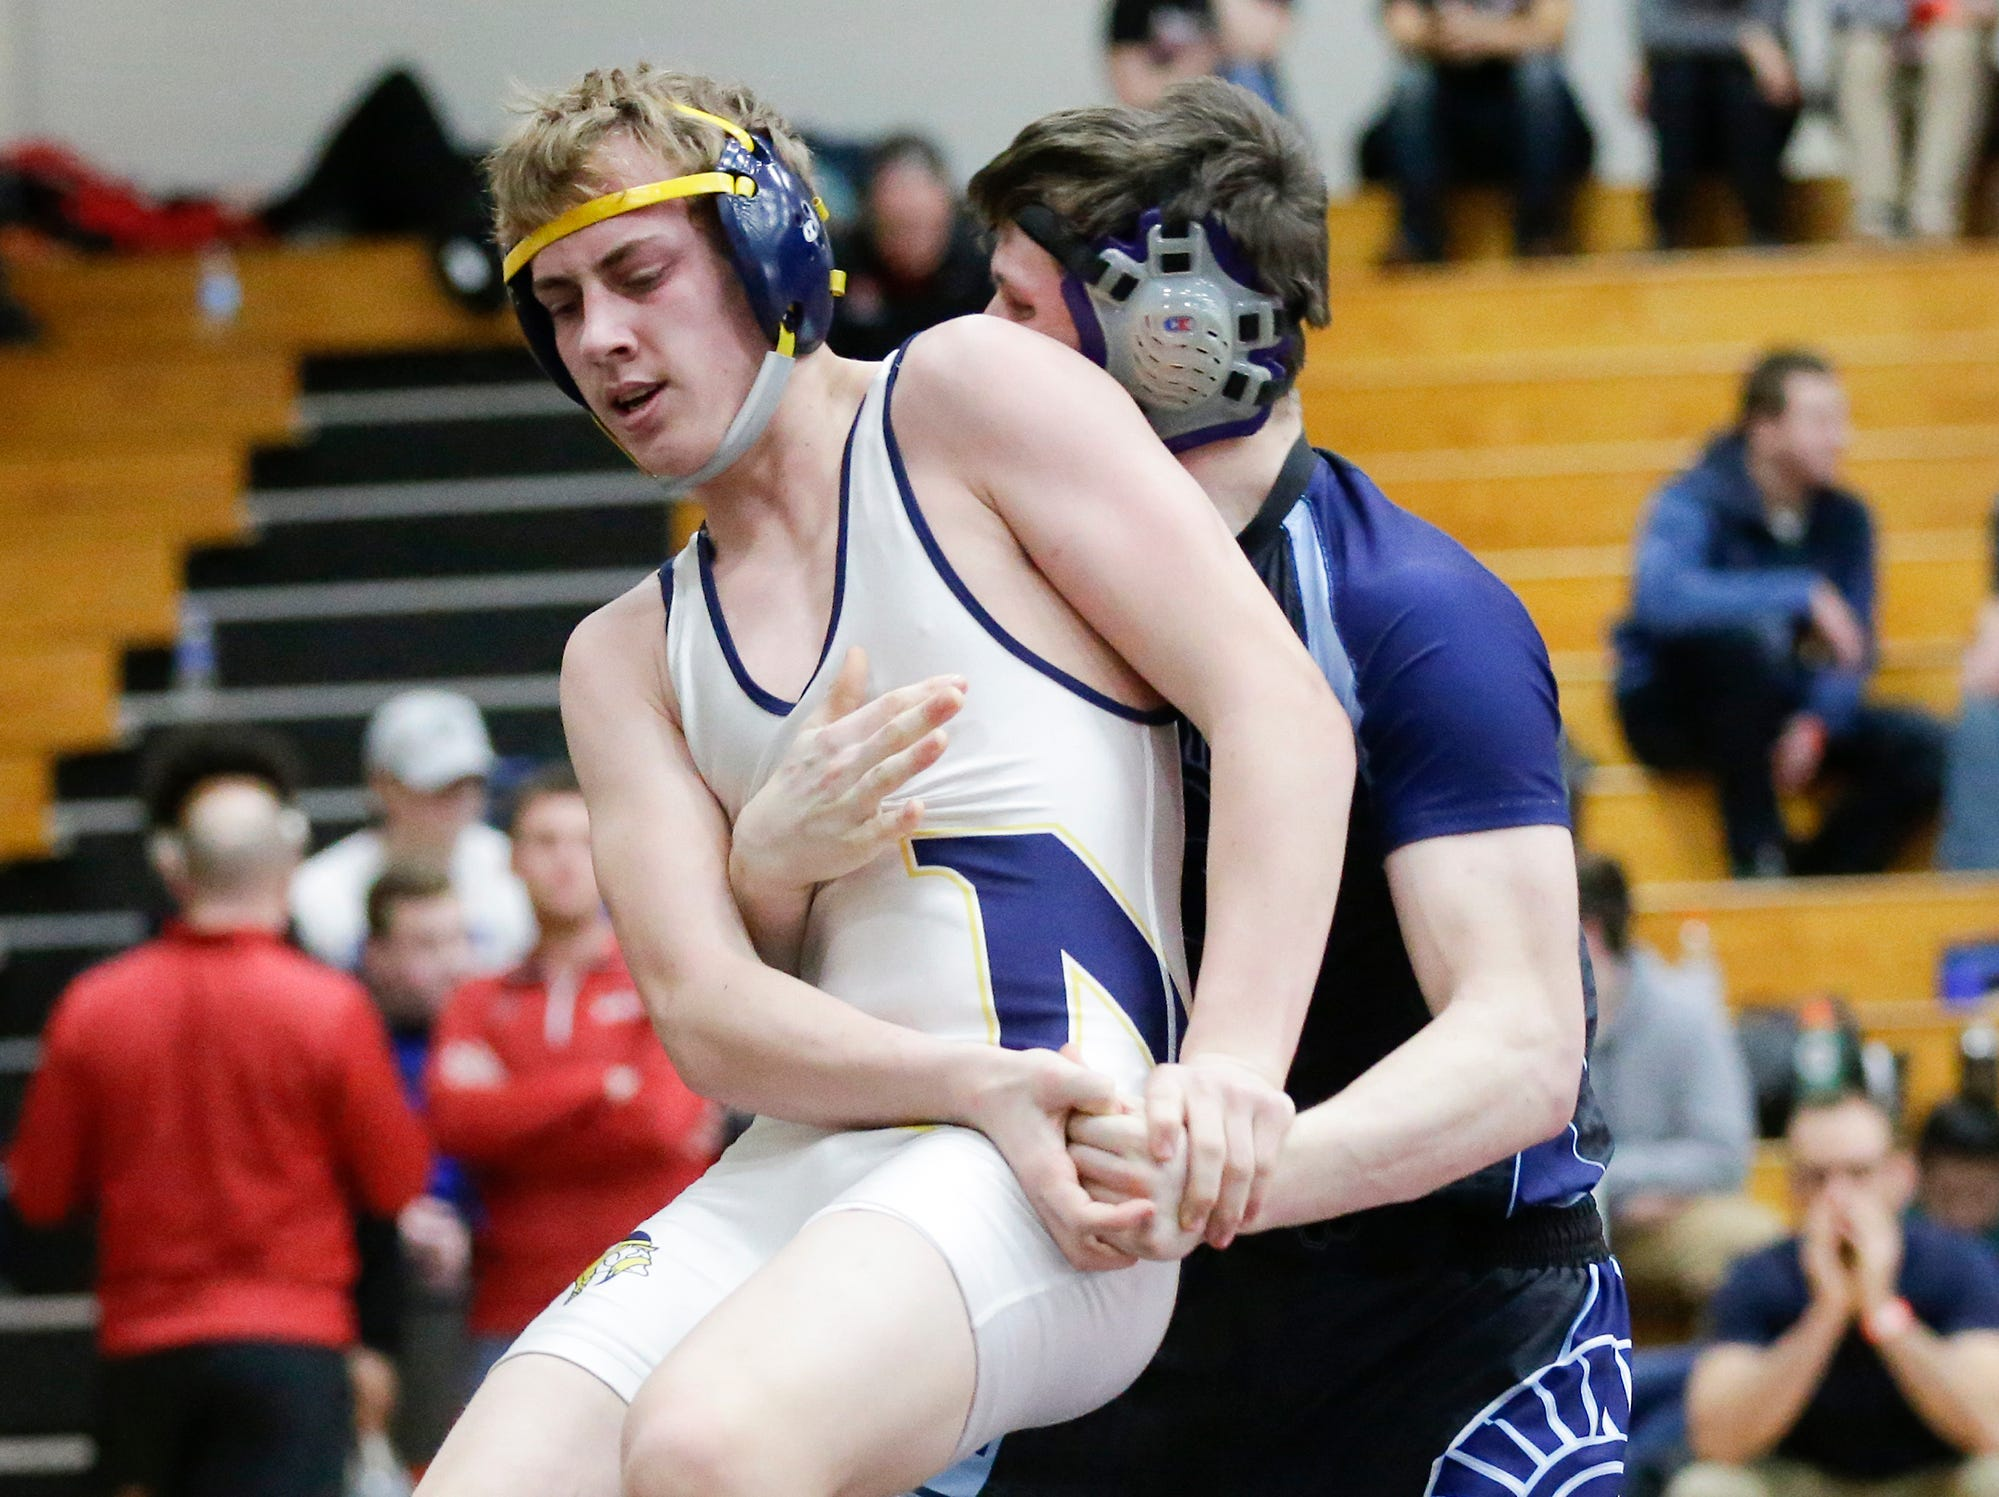 Josh Johnson of West Bend West High School wrestles Kade Allen of Sheboygan North High School in the 160 pound weight class during the WIAA sectionals Saturday, February 16, 2019 in Hartford, Wis. Johnson won with a score of 14-4. Doug Raflik/USA TODAY NETWORK-Wisconsin